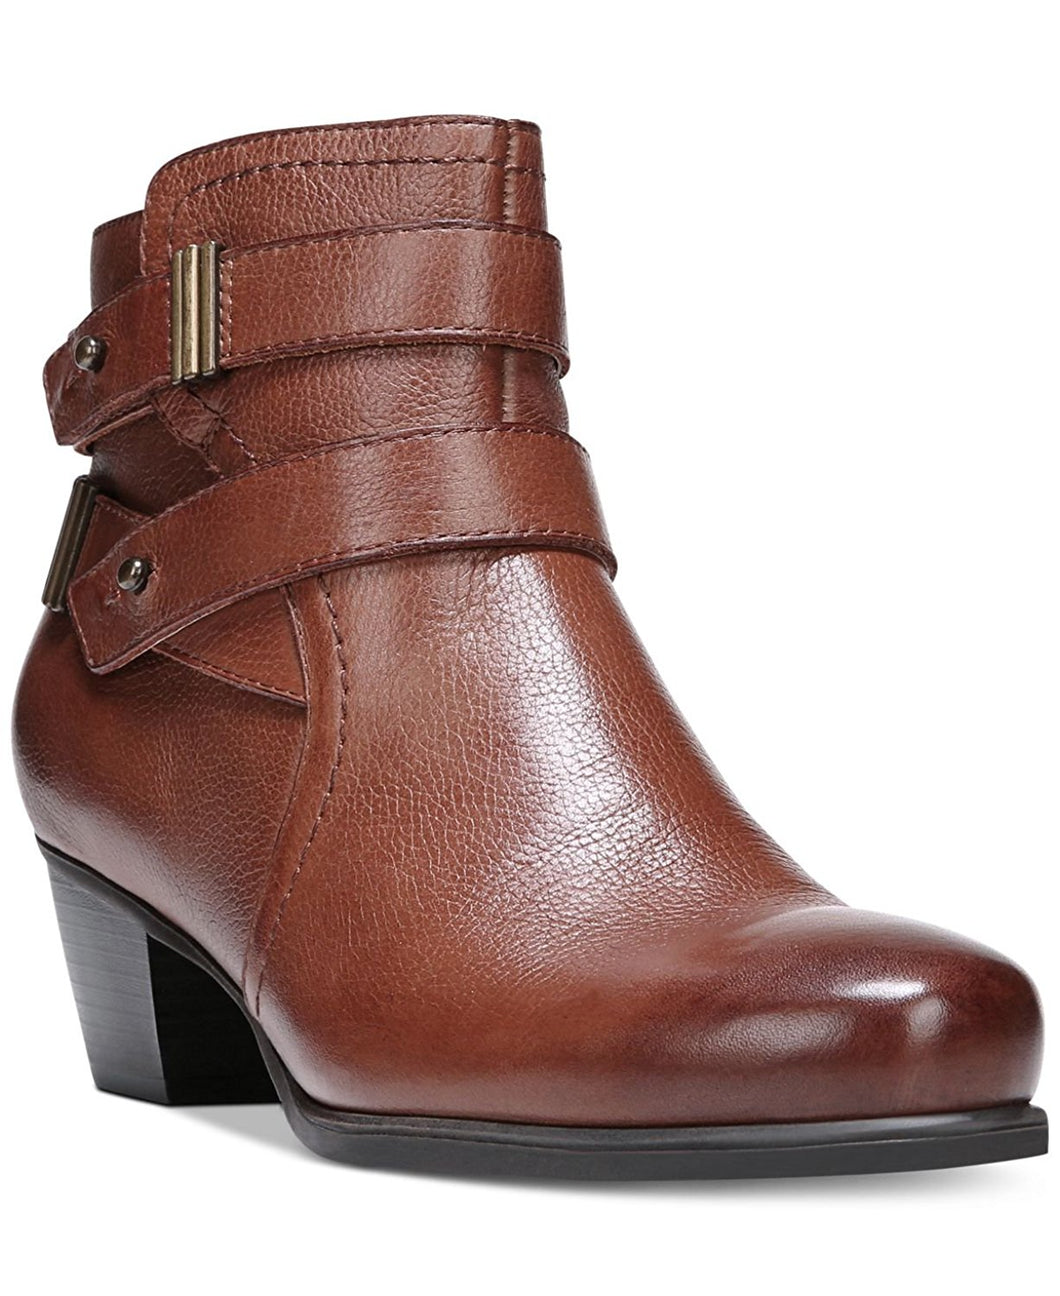 Naturalizer Kepler Ankle Boots 9 W, Banana Bread